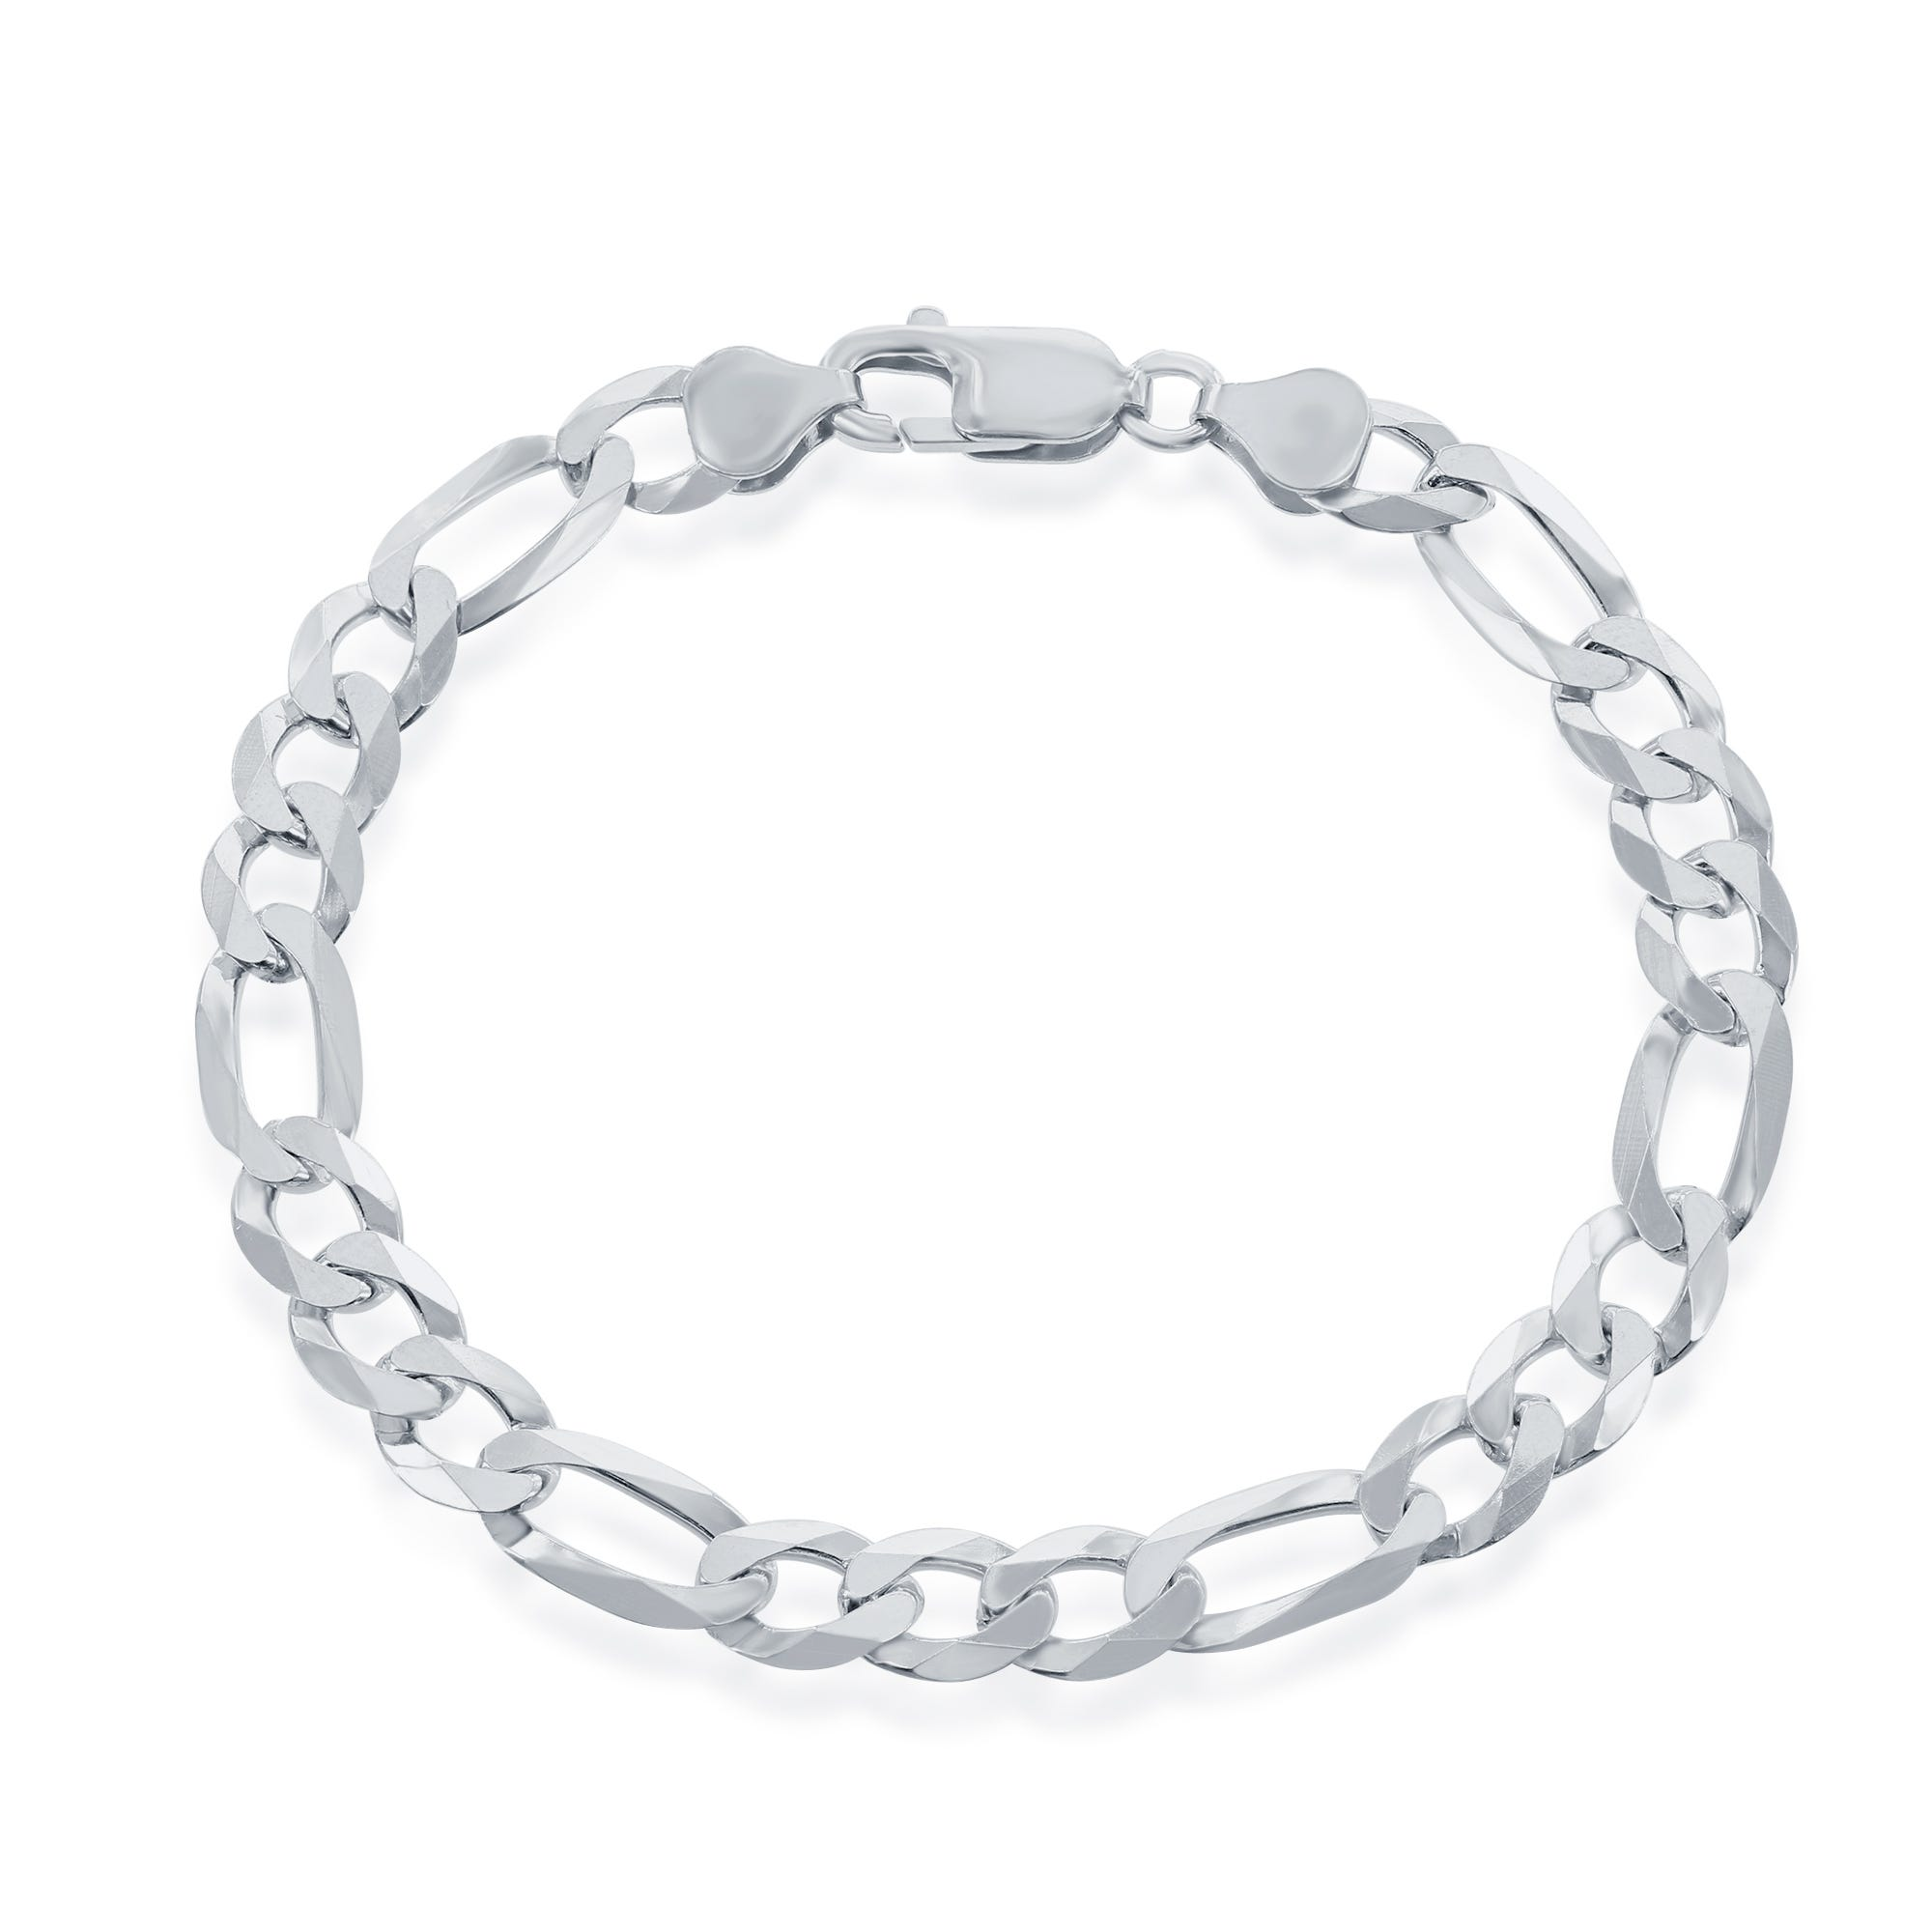 Figaro Chain Bracelet in Sterling Silver 9